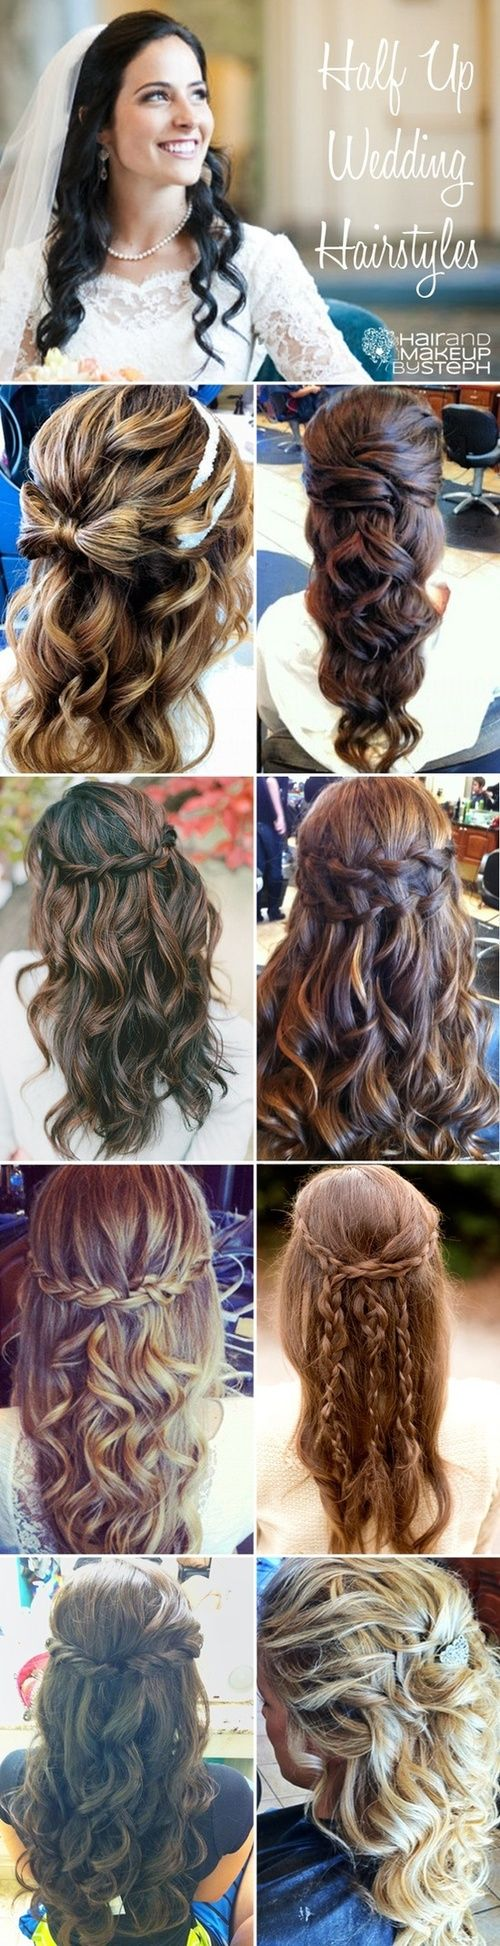 best wedding hair images on pinterest bridal hairstyles